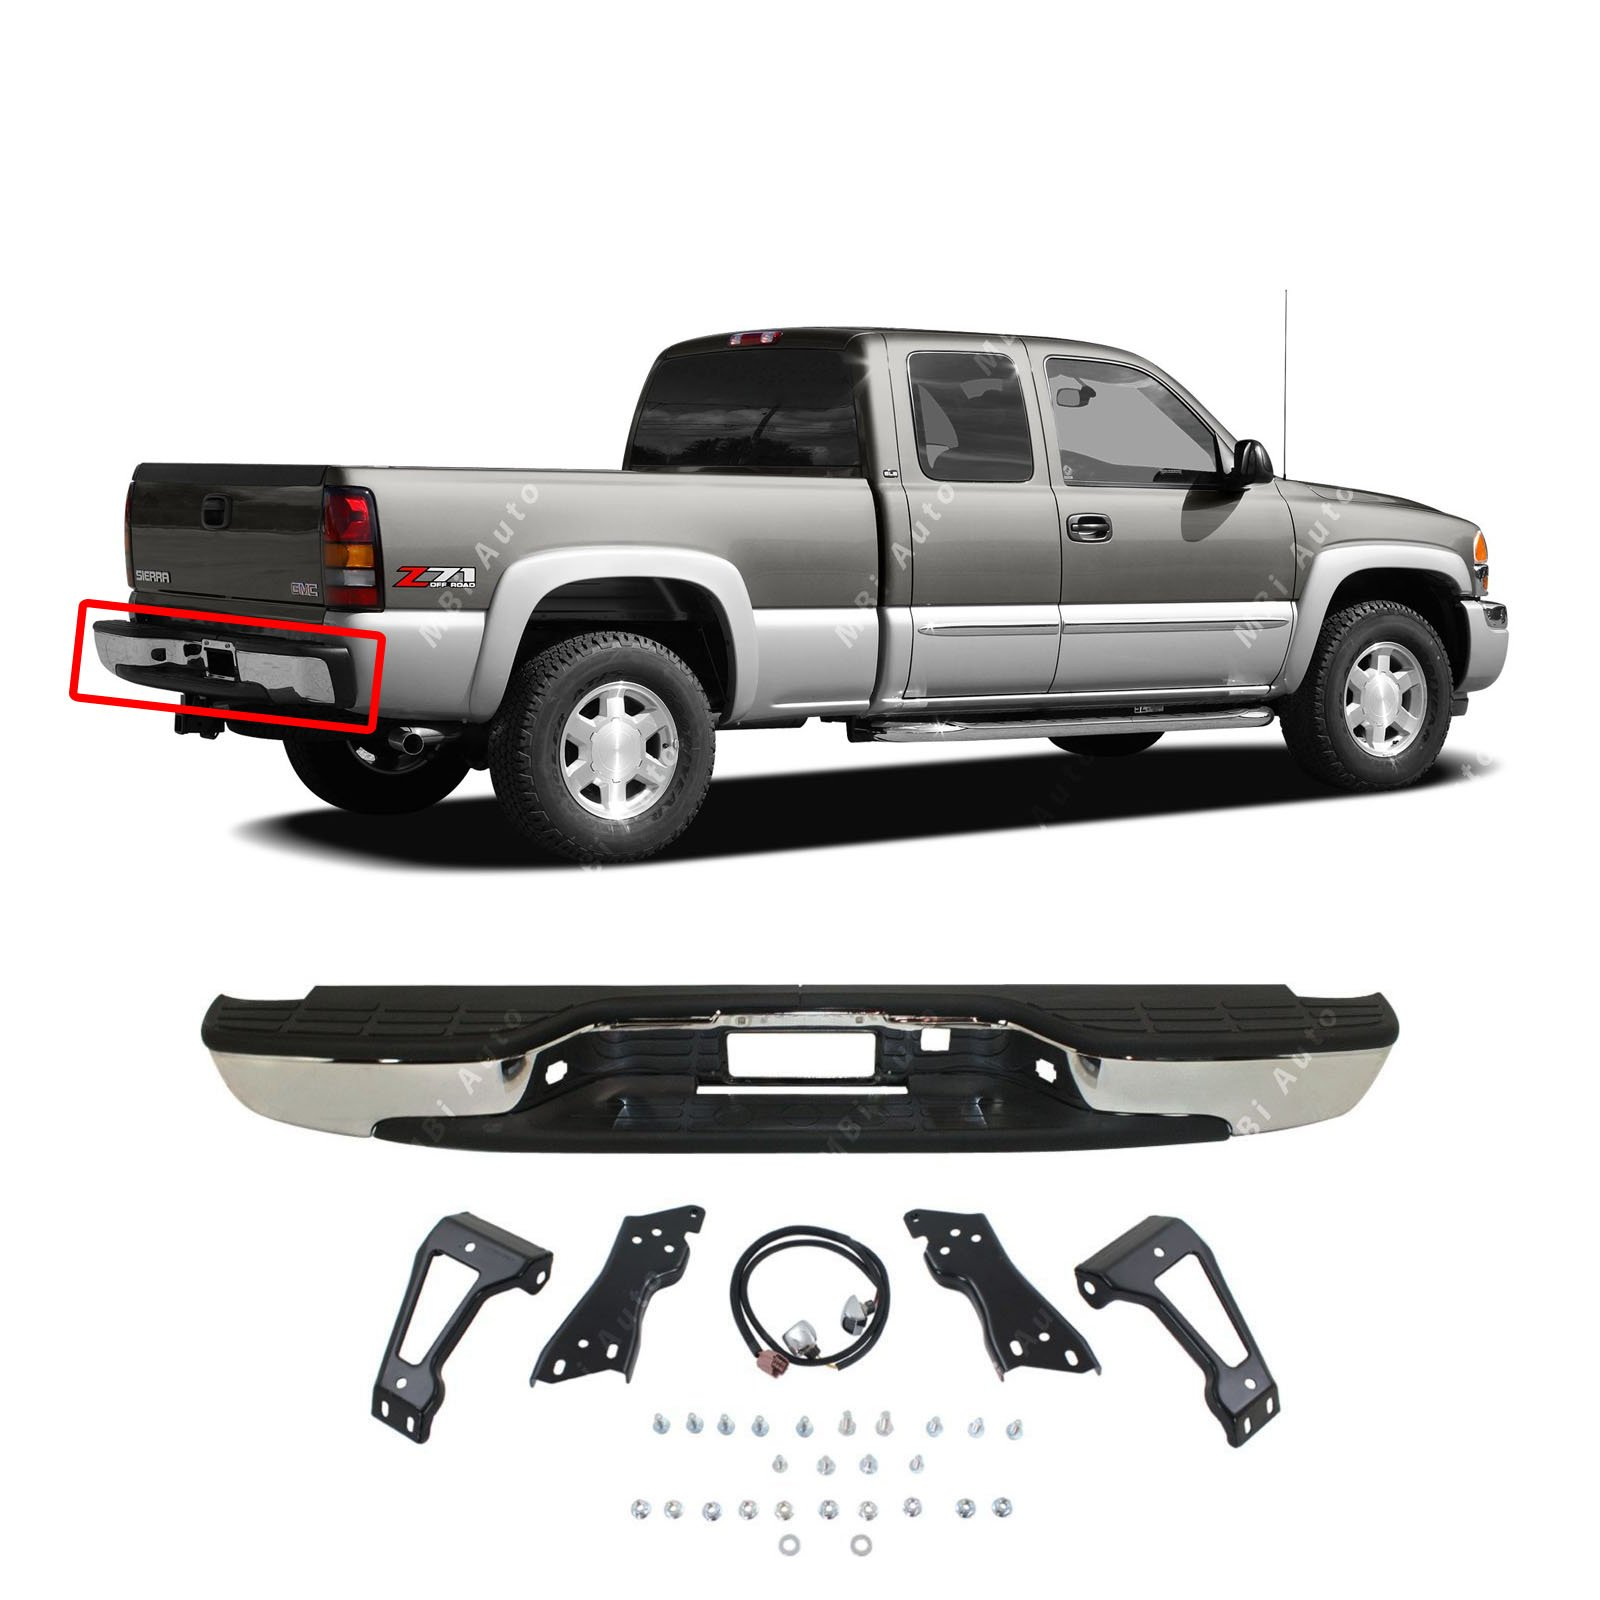 MBI AUTO - NEW Complete Chrome Rear Step Bumper Assembly For 1999-2006 Chevy Silverado GMC Sierra 1500 Truck GM1103122 by Painted Tailgates